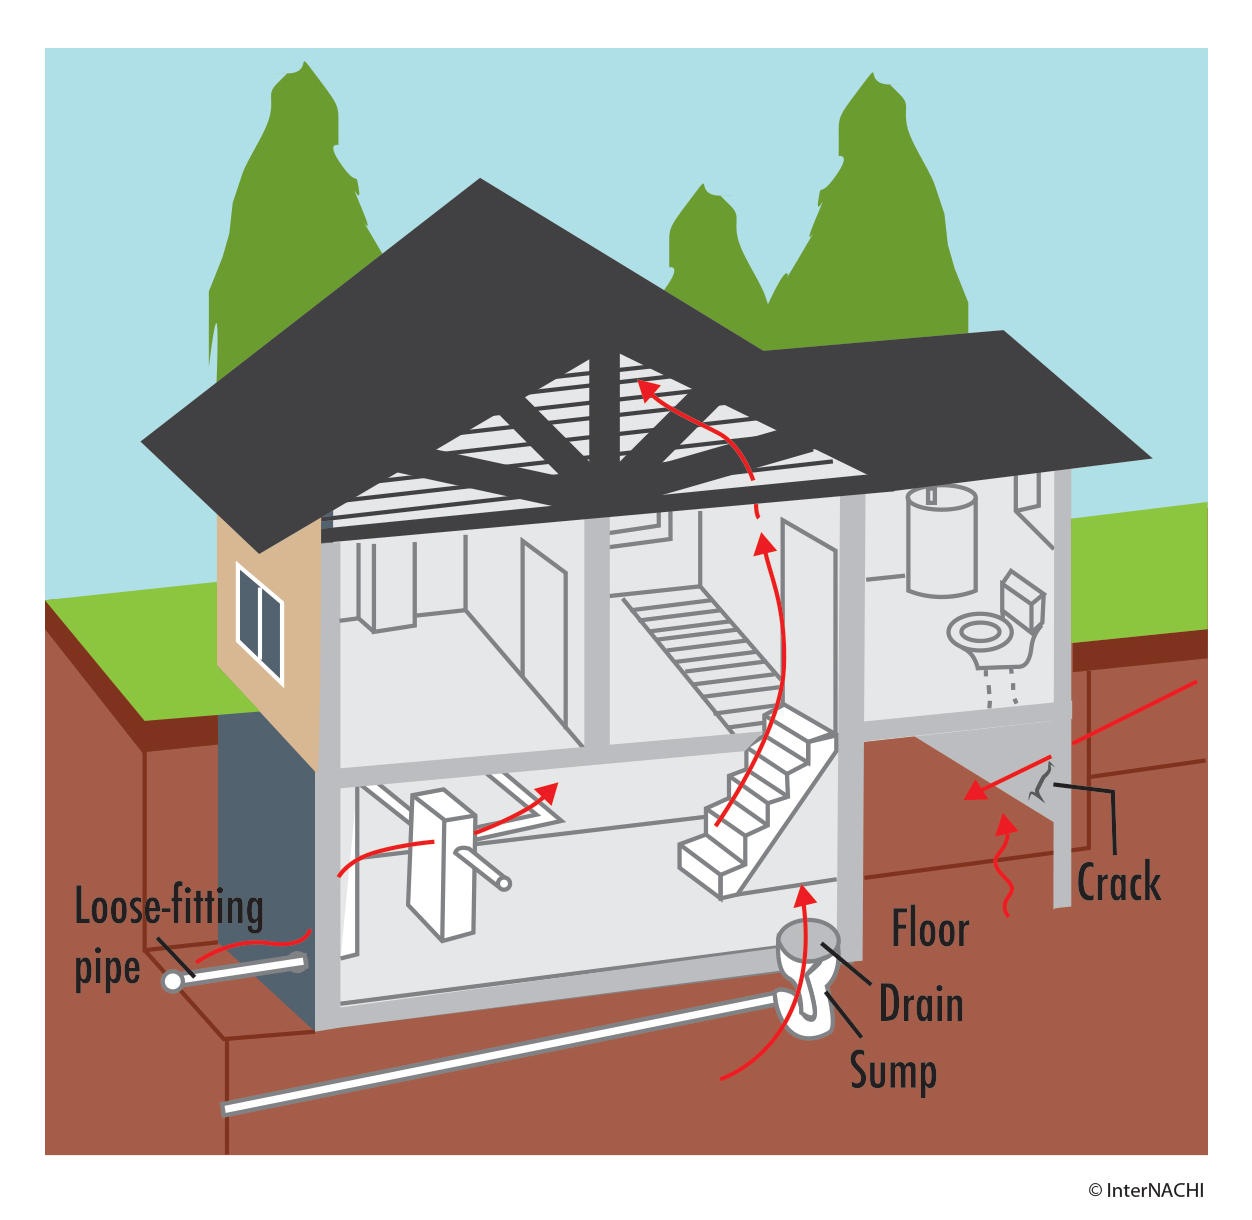 Radon Entry from soil to home